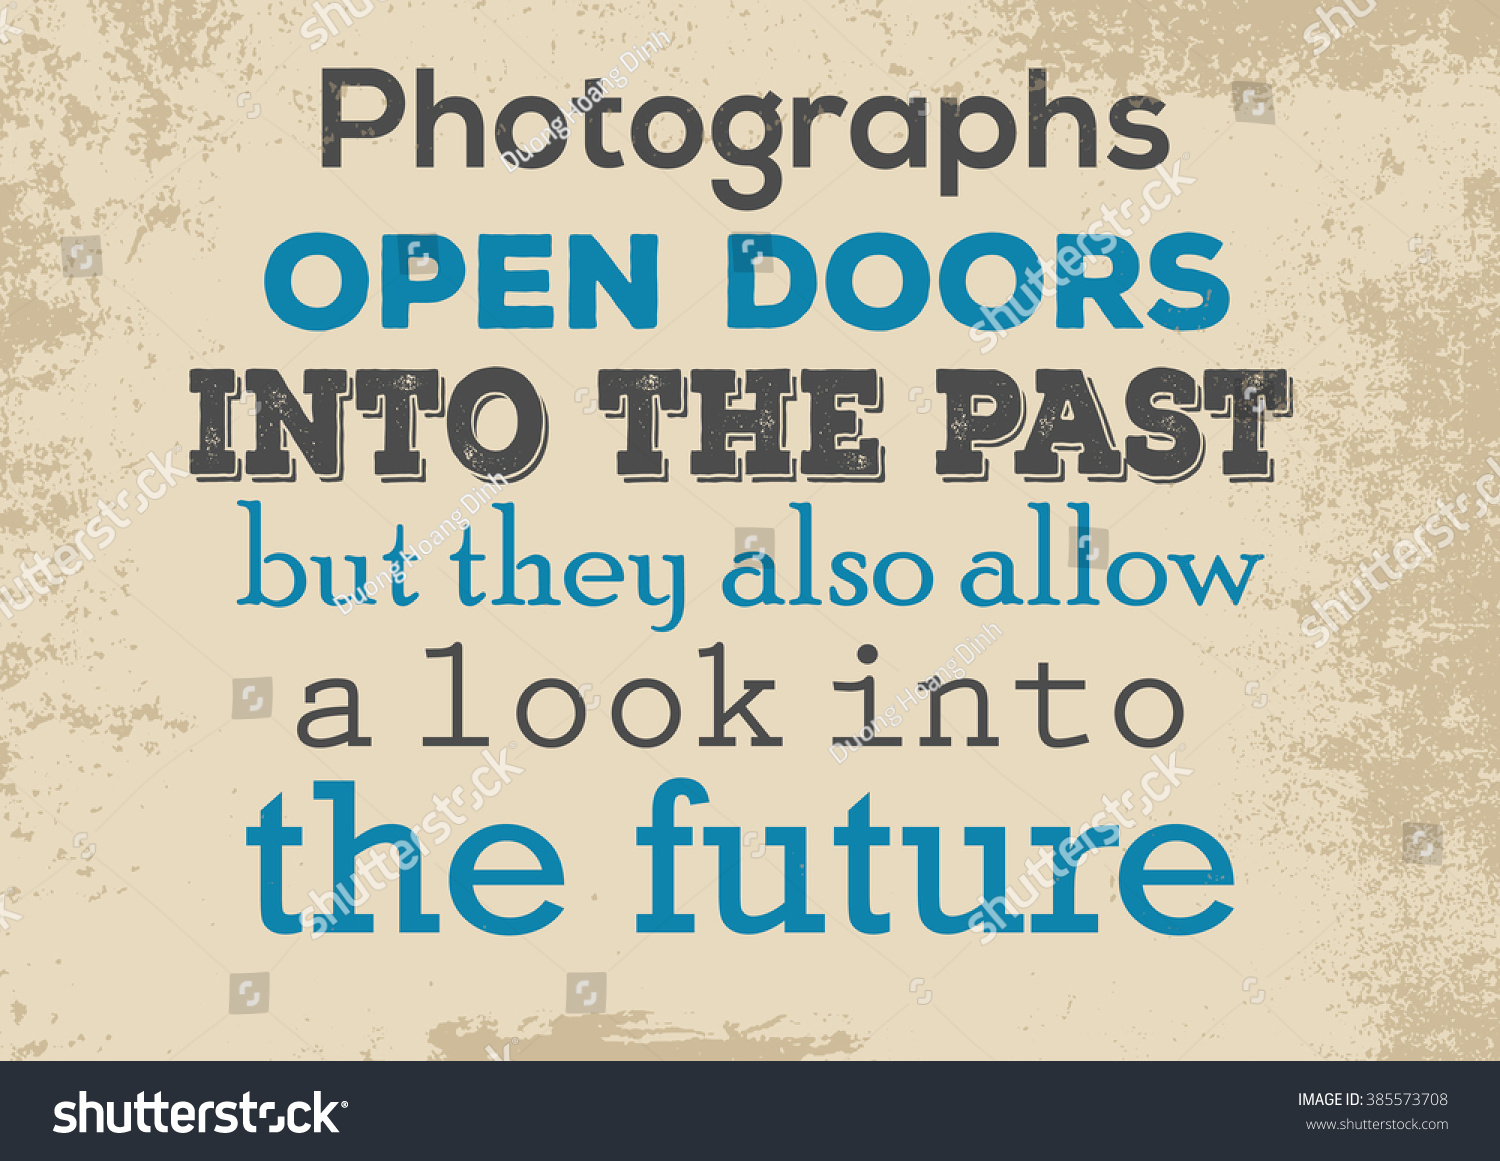 Photography Sayings For Business Cards Image collections - Free ...